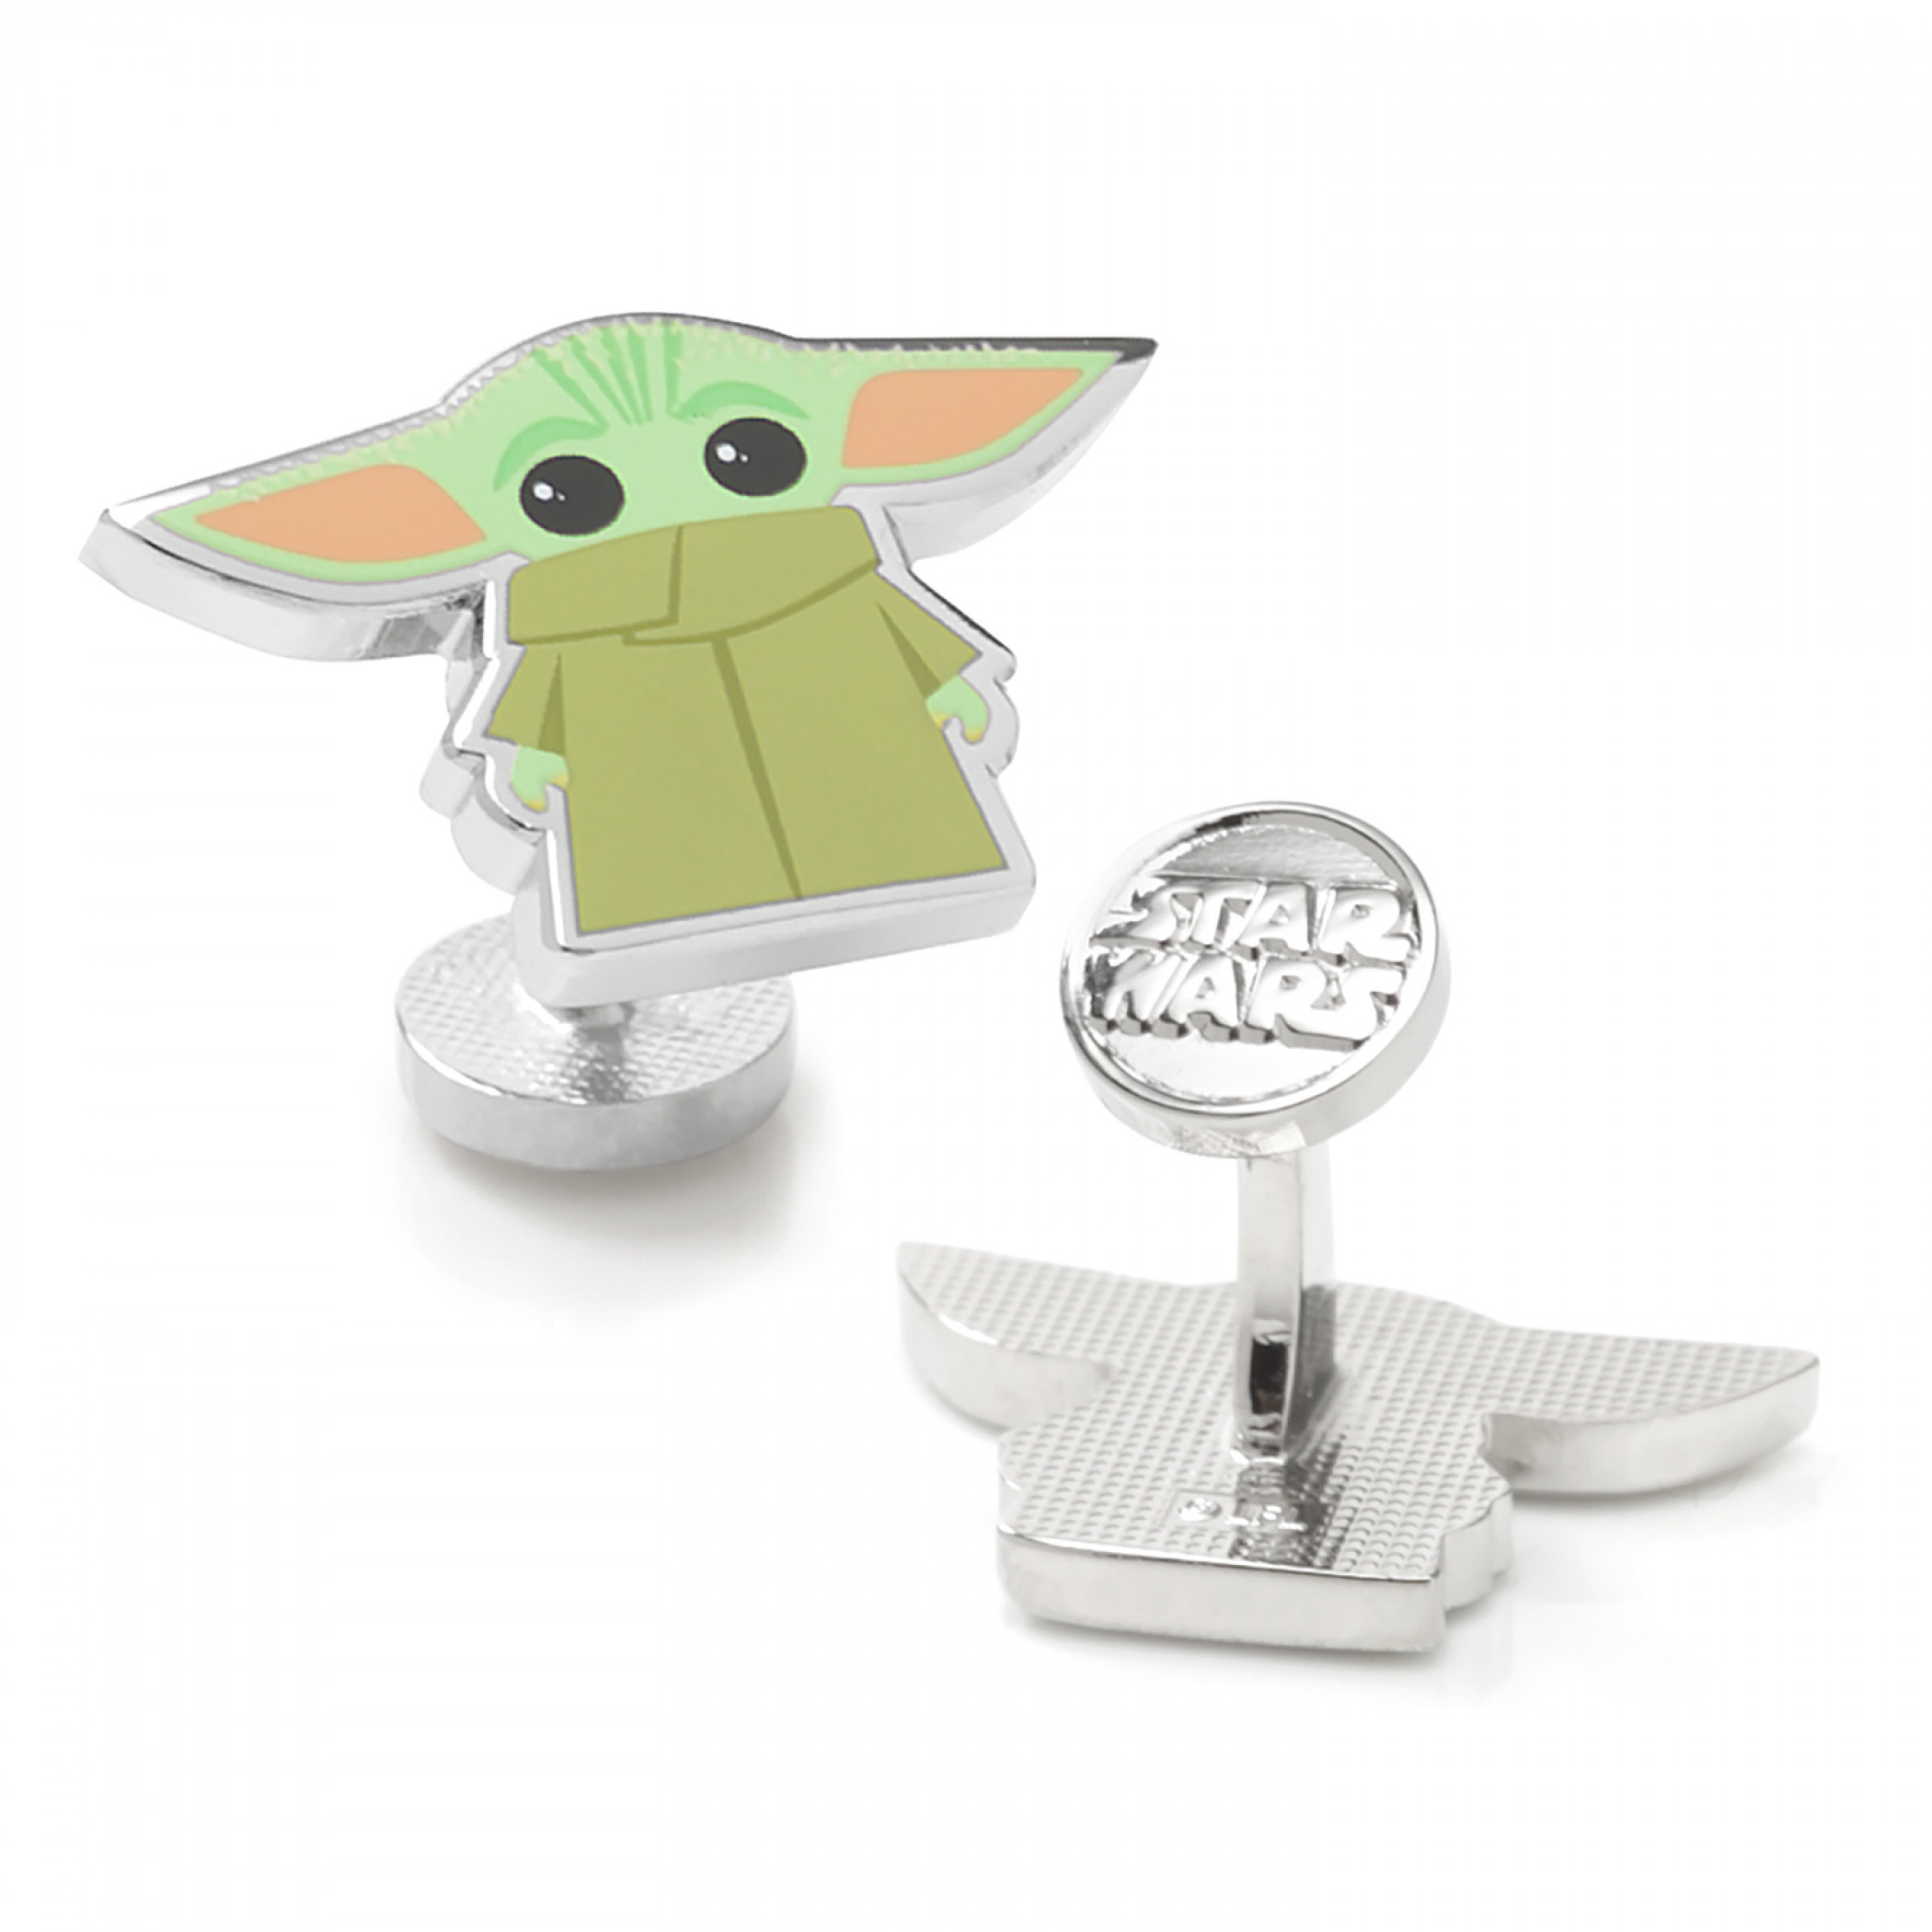 Star Wars The Mandalorian's The Child Cufflinks